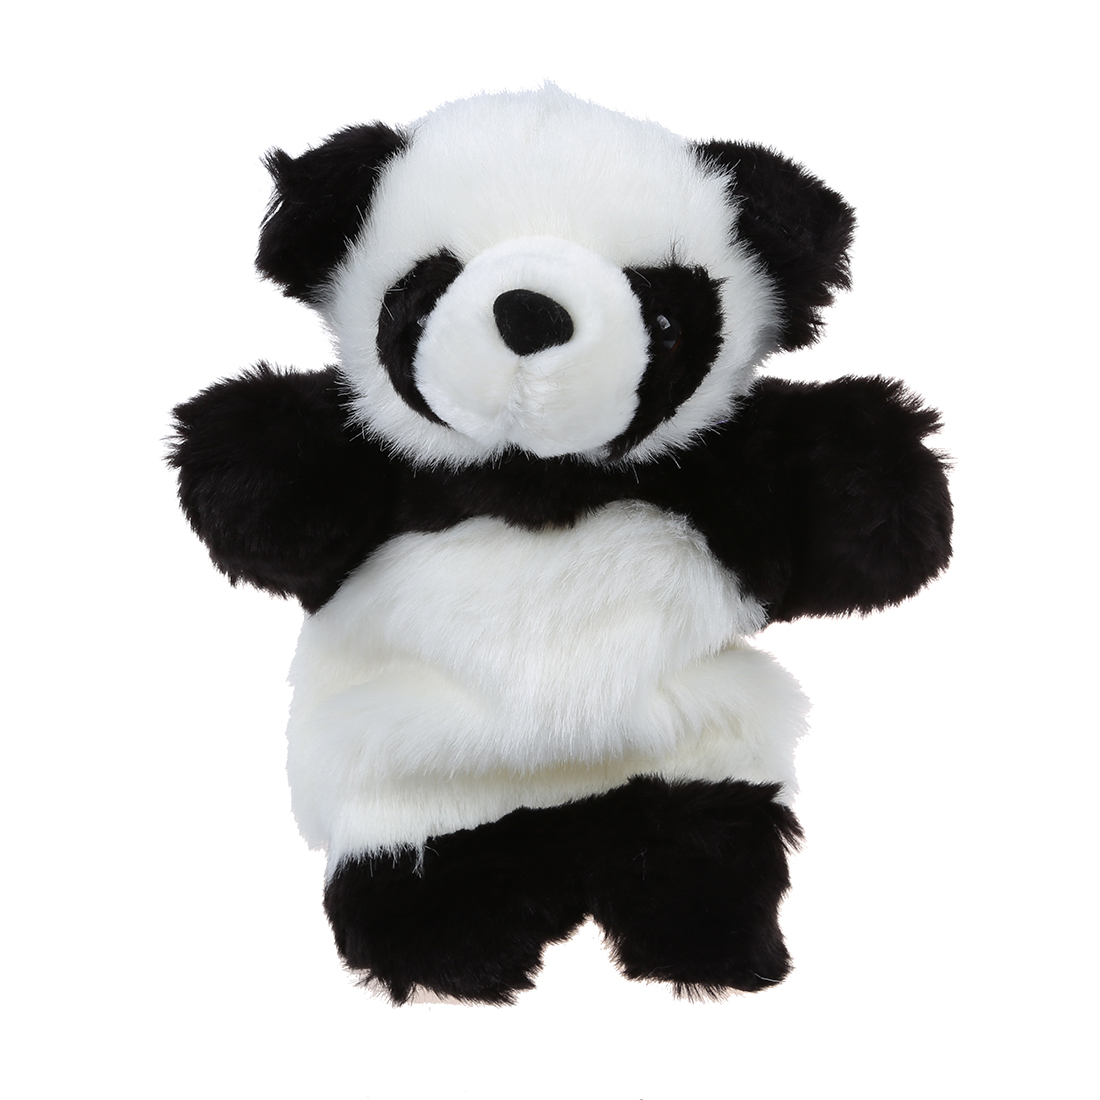 Cute Panda Wildlife Hand Glove Puppet Soft Plush Puppets Kid Childrens Toy Gift